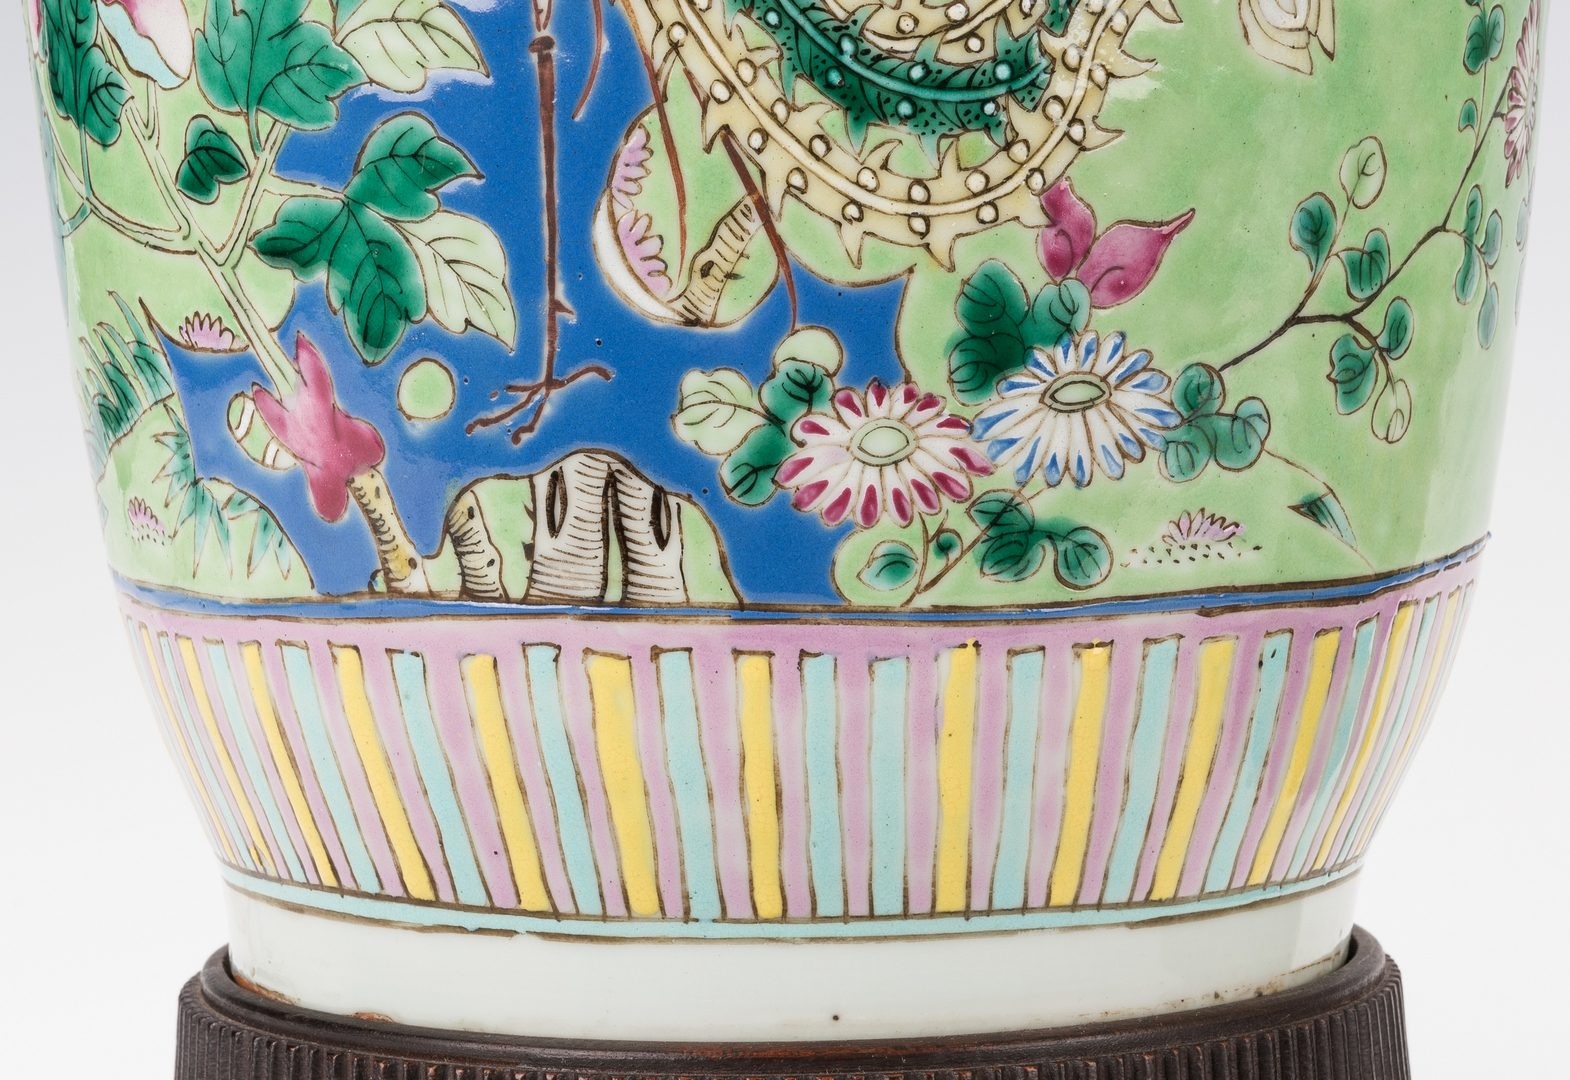 Lot 22: Pr. Chinese Porcelain Famille Verte Vases Mounted as Lamps